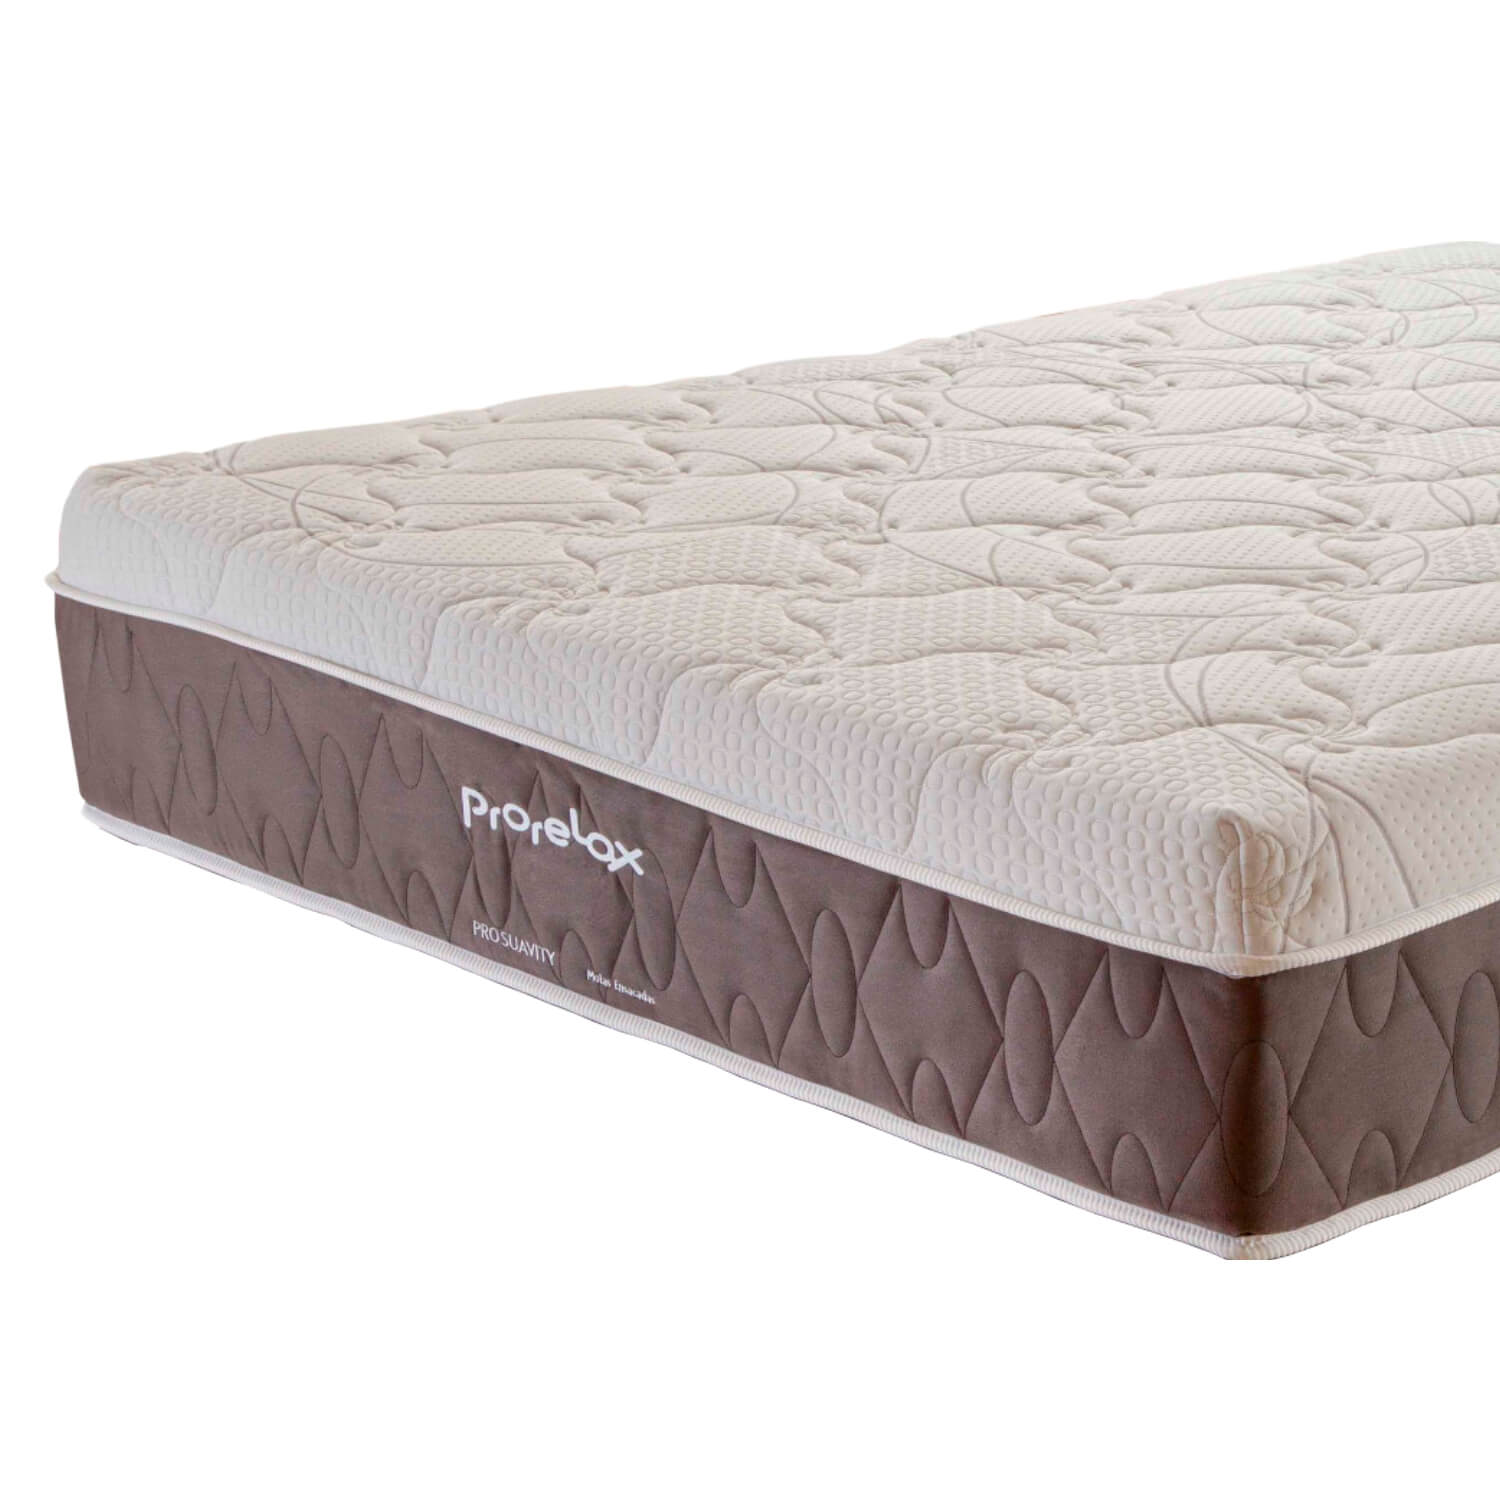 Colchão Queen Prorelax Pro Suavity 158x198x30 Molas Ensacadas Pillow Top Turn Free